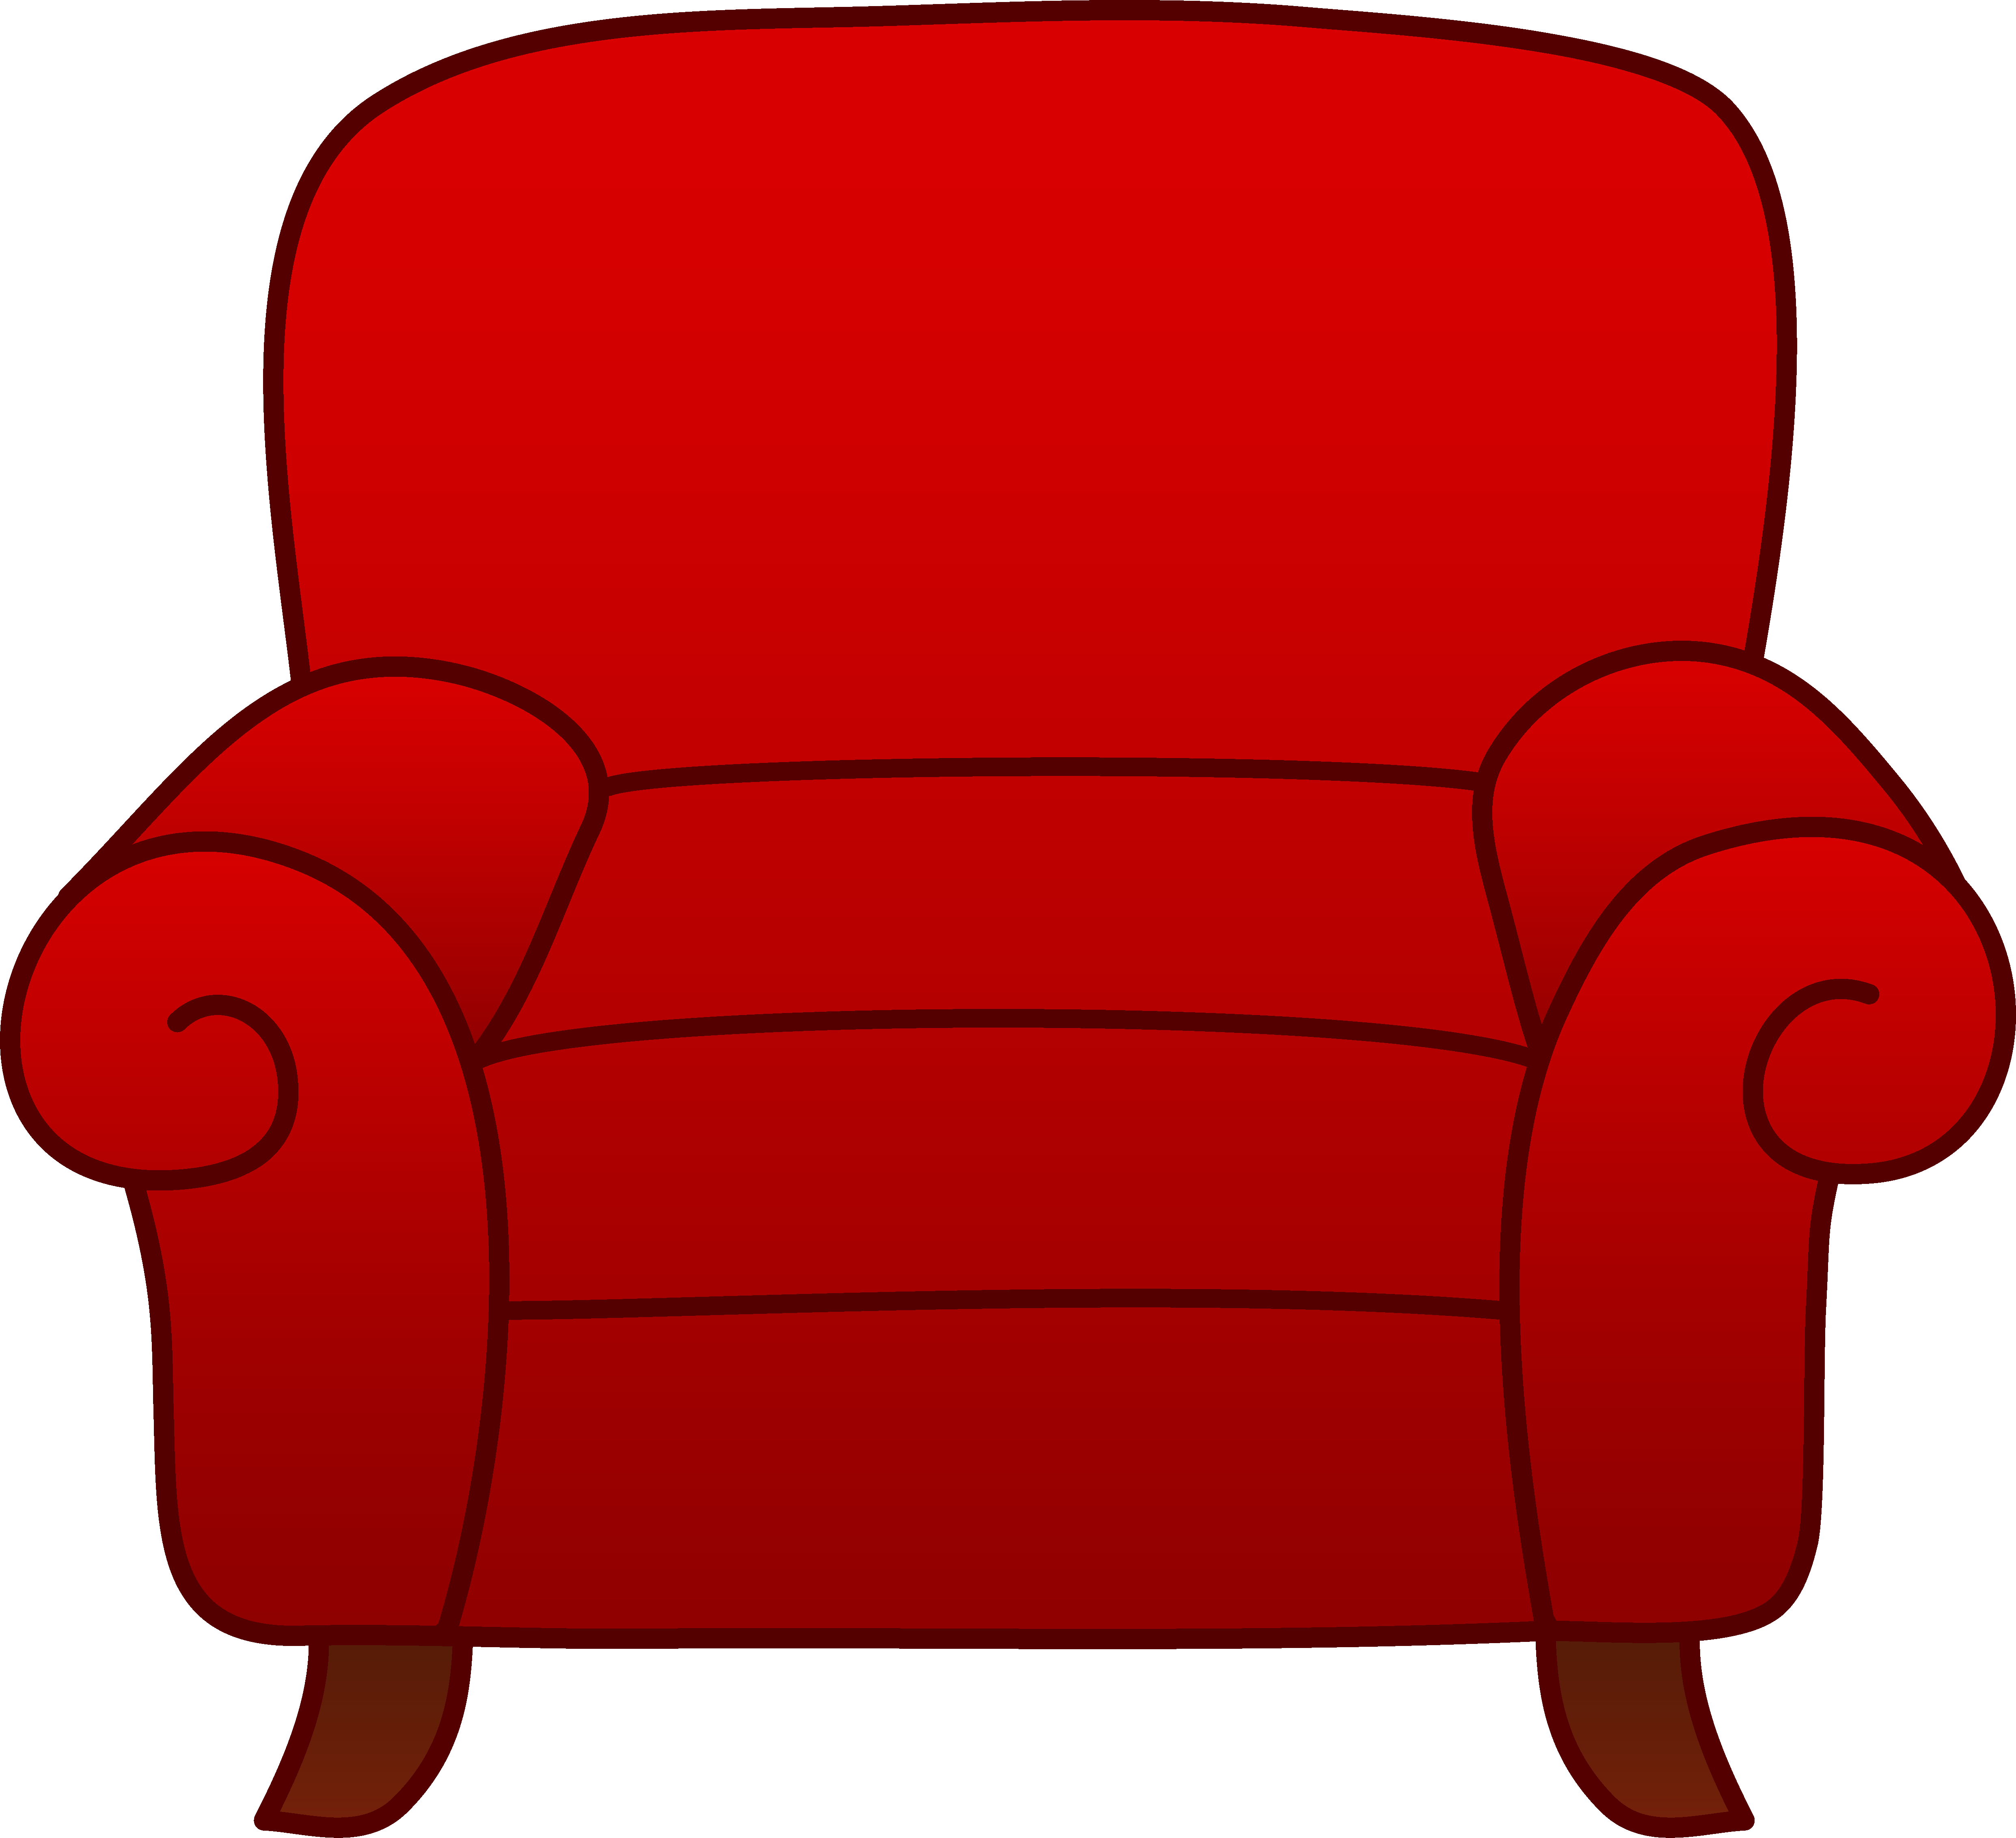 Living room at getdrawings. Furniture clipart image royalty free